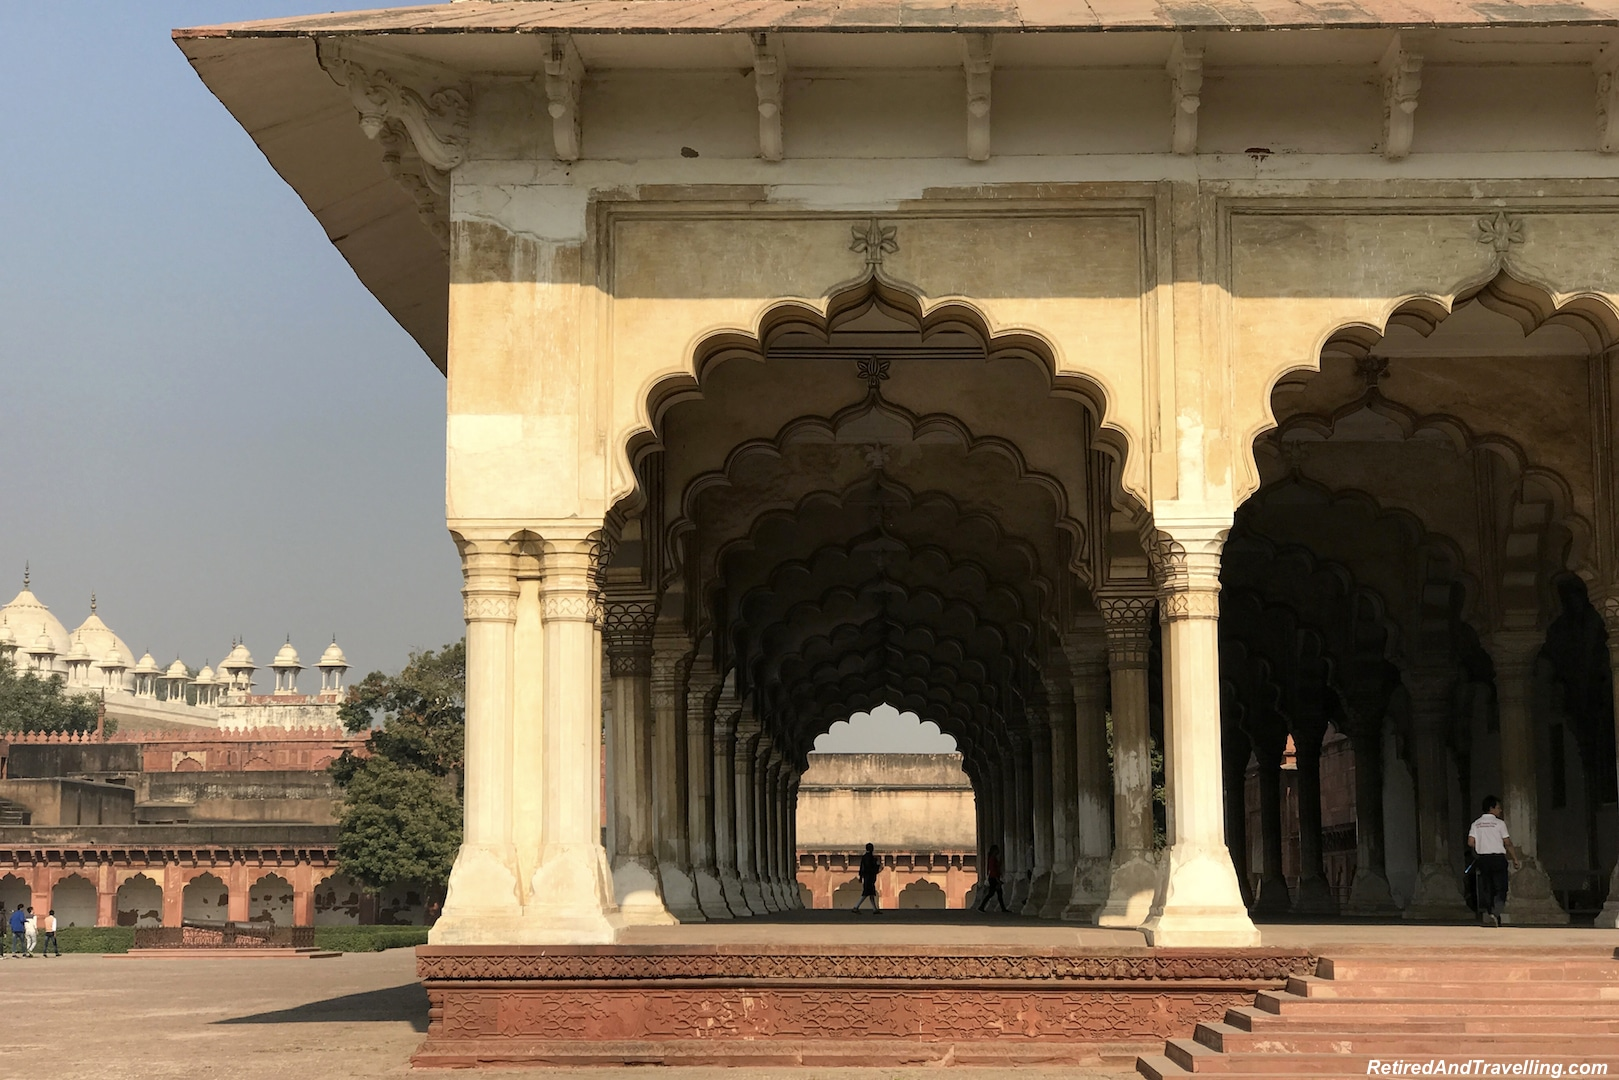 Agra Fort / Red Fort in Agra - Delhi Drive to Explore Agra.jpg